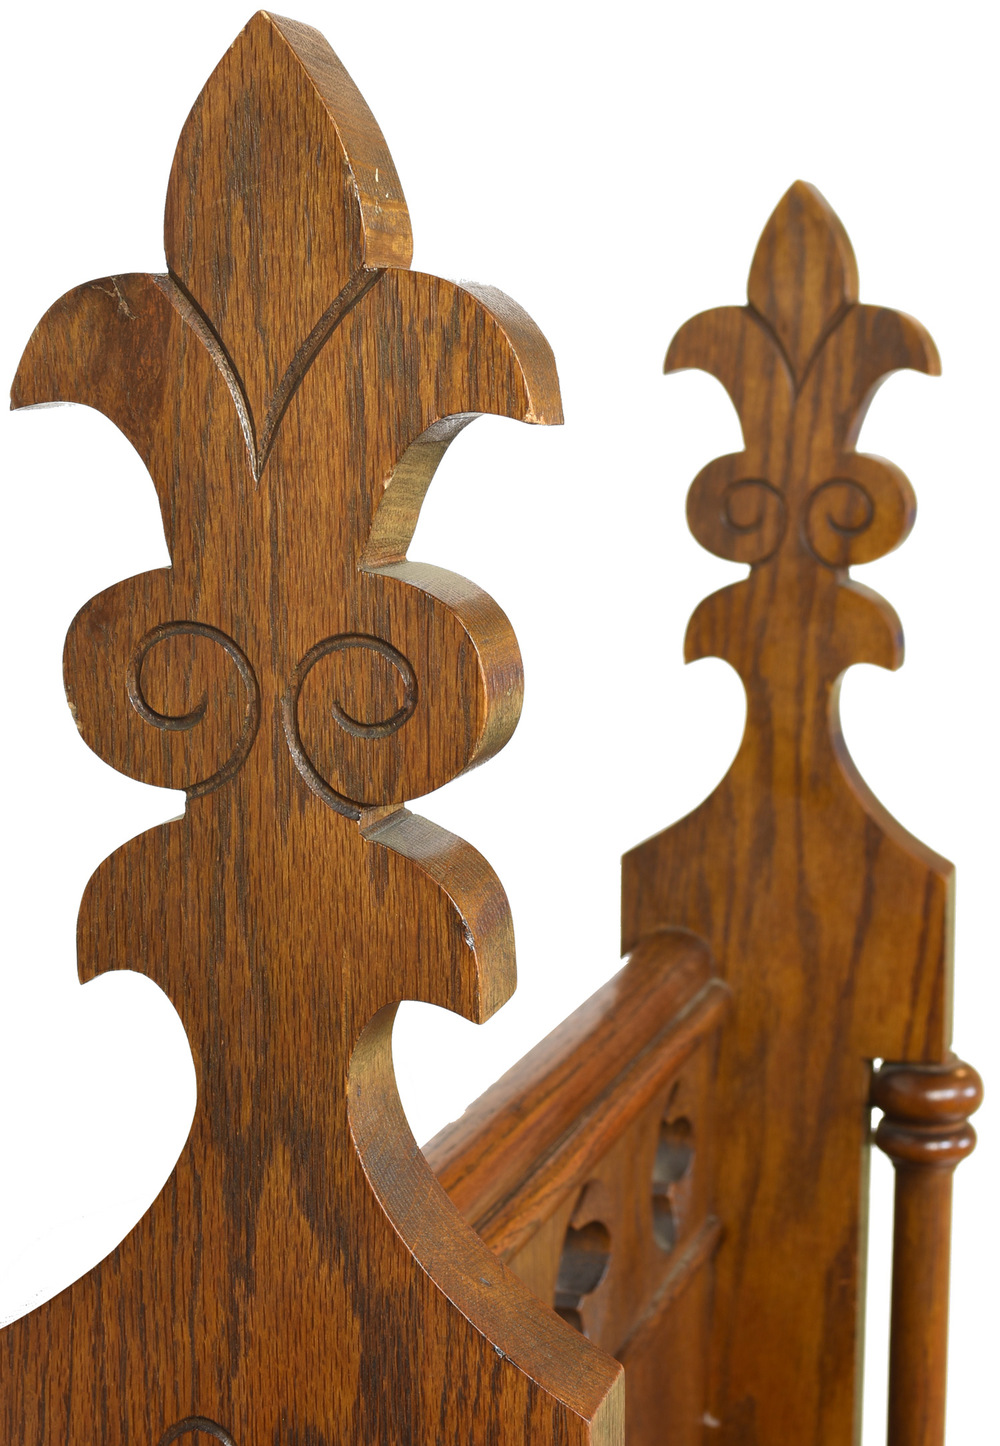 46363-small-clergy-chair-with-carved-lilies-on-side-angled-top-detail.jpg